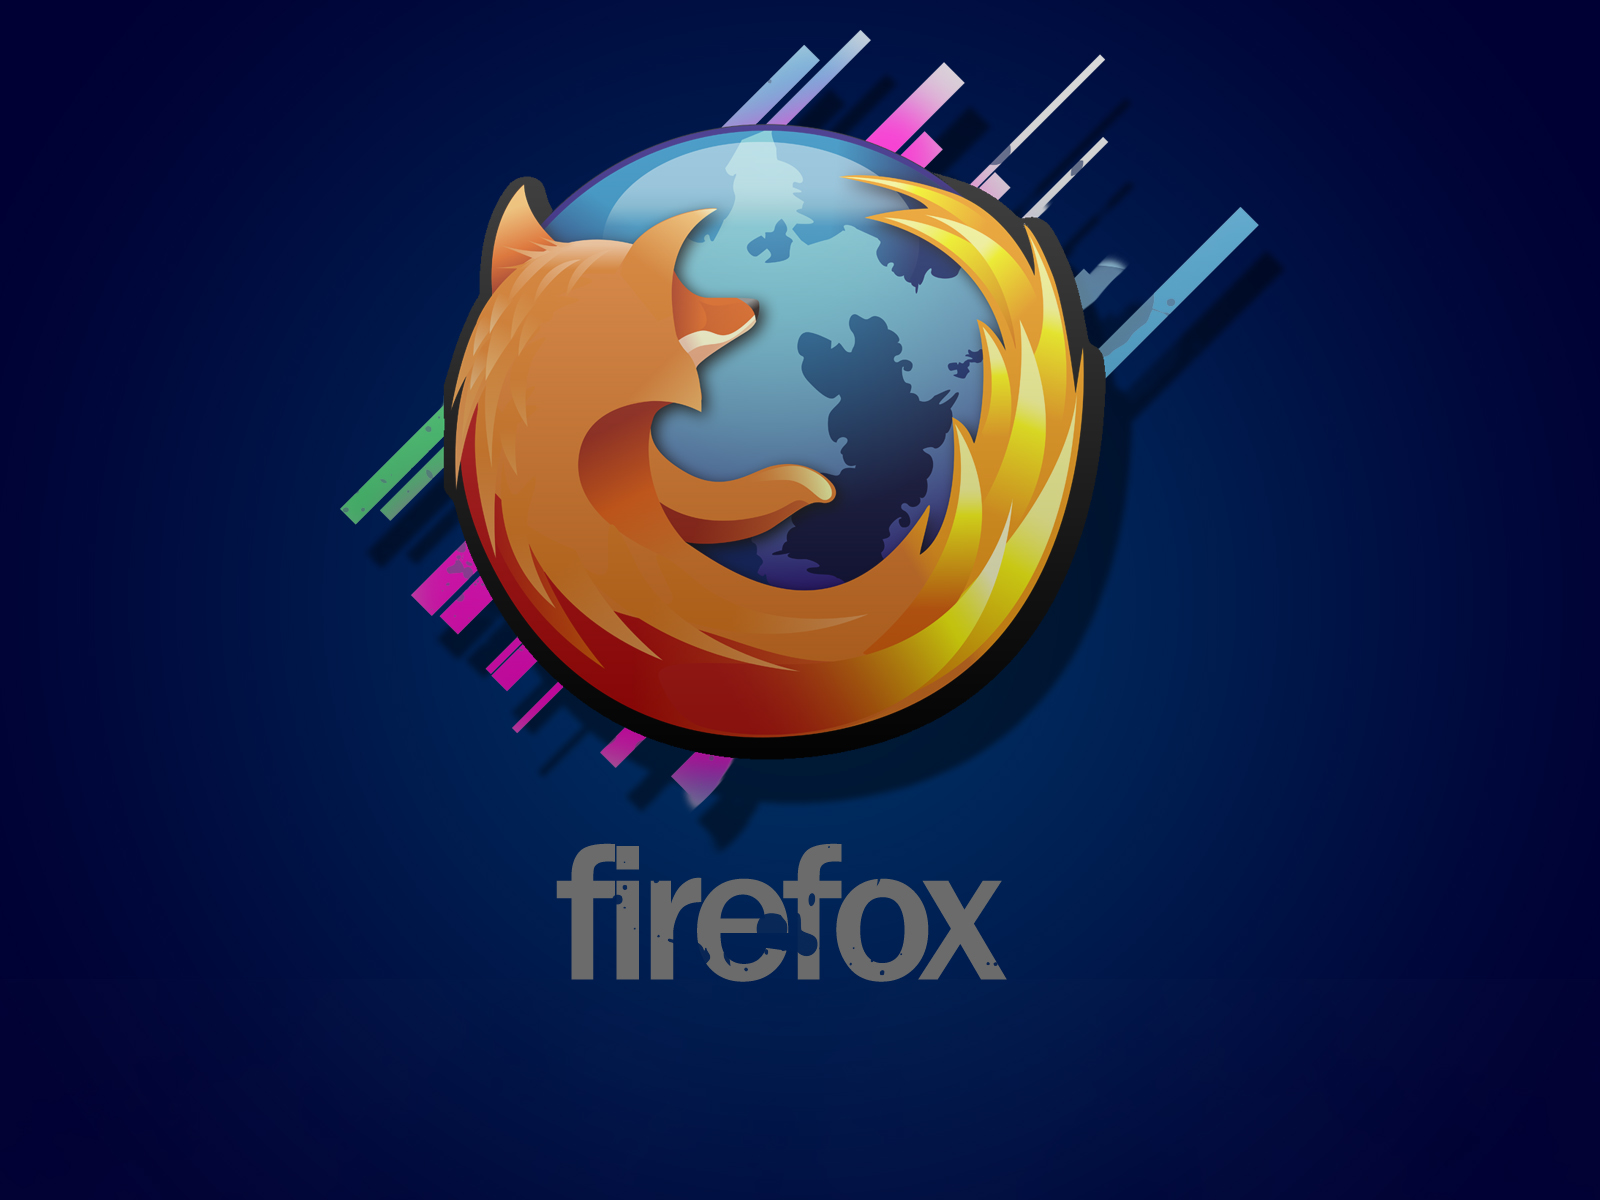 Firefox HD Wallpapers Mozilla Background Download Wallpapers in 1600x1200